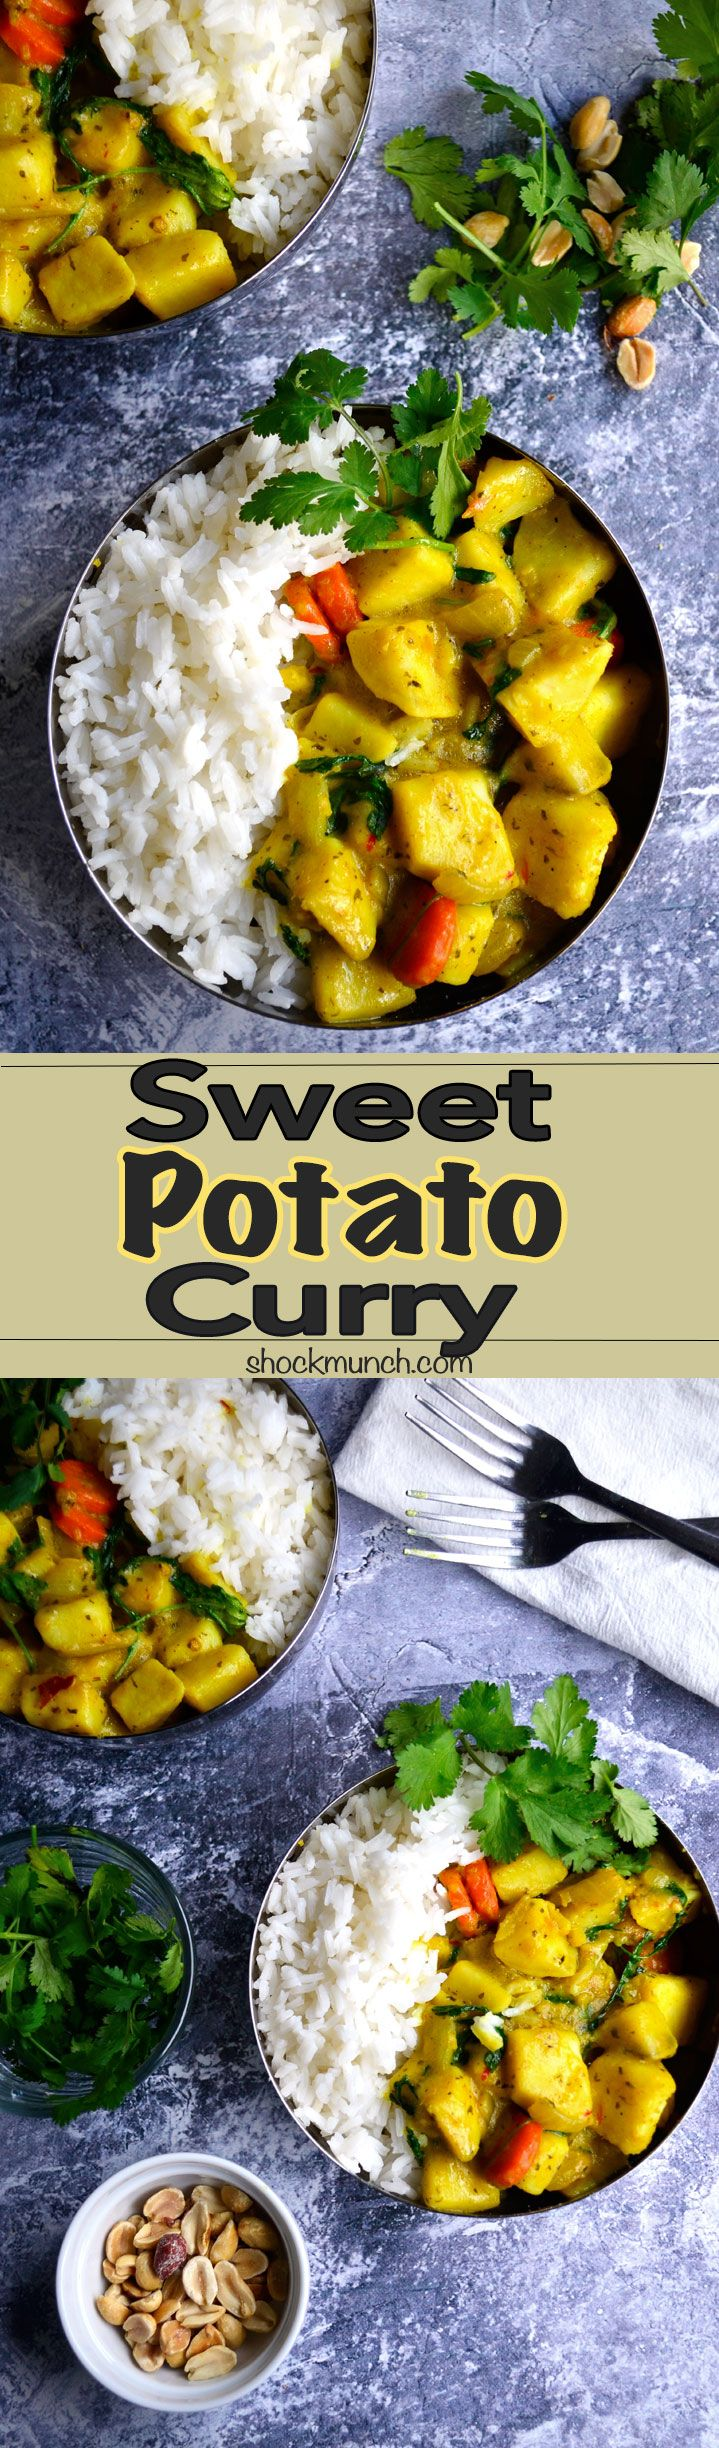 Vegan Sweet Potato Curry!  Comforting, creamy, and immensely satisfying!   #vegan #vegetarian #curry